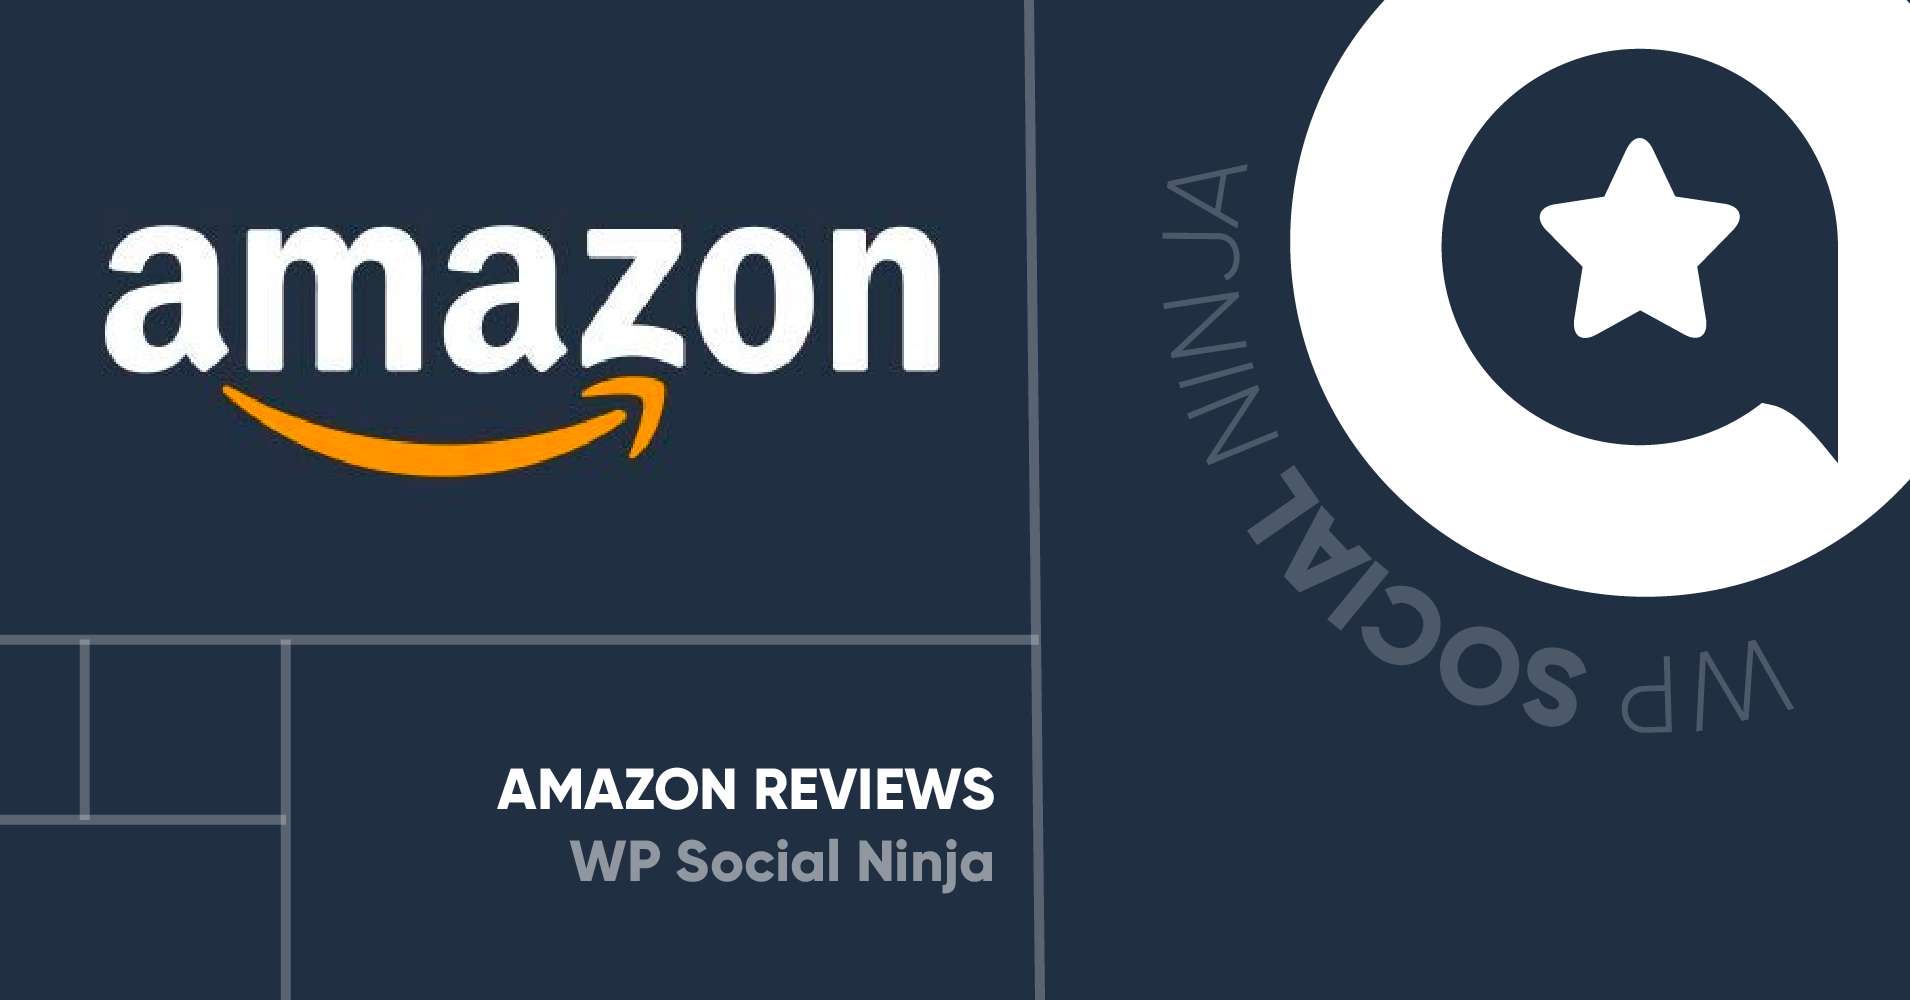 How to Add Amazon Reviews on Your Website (Step by step guide)